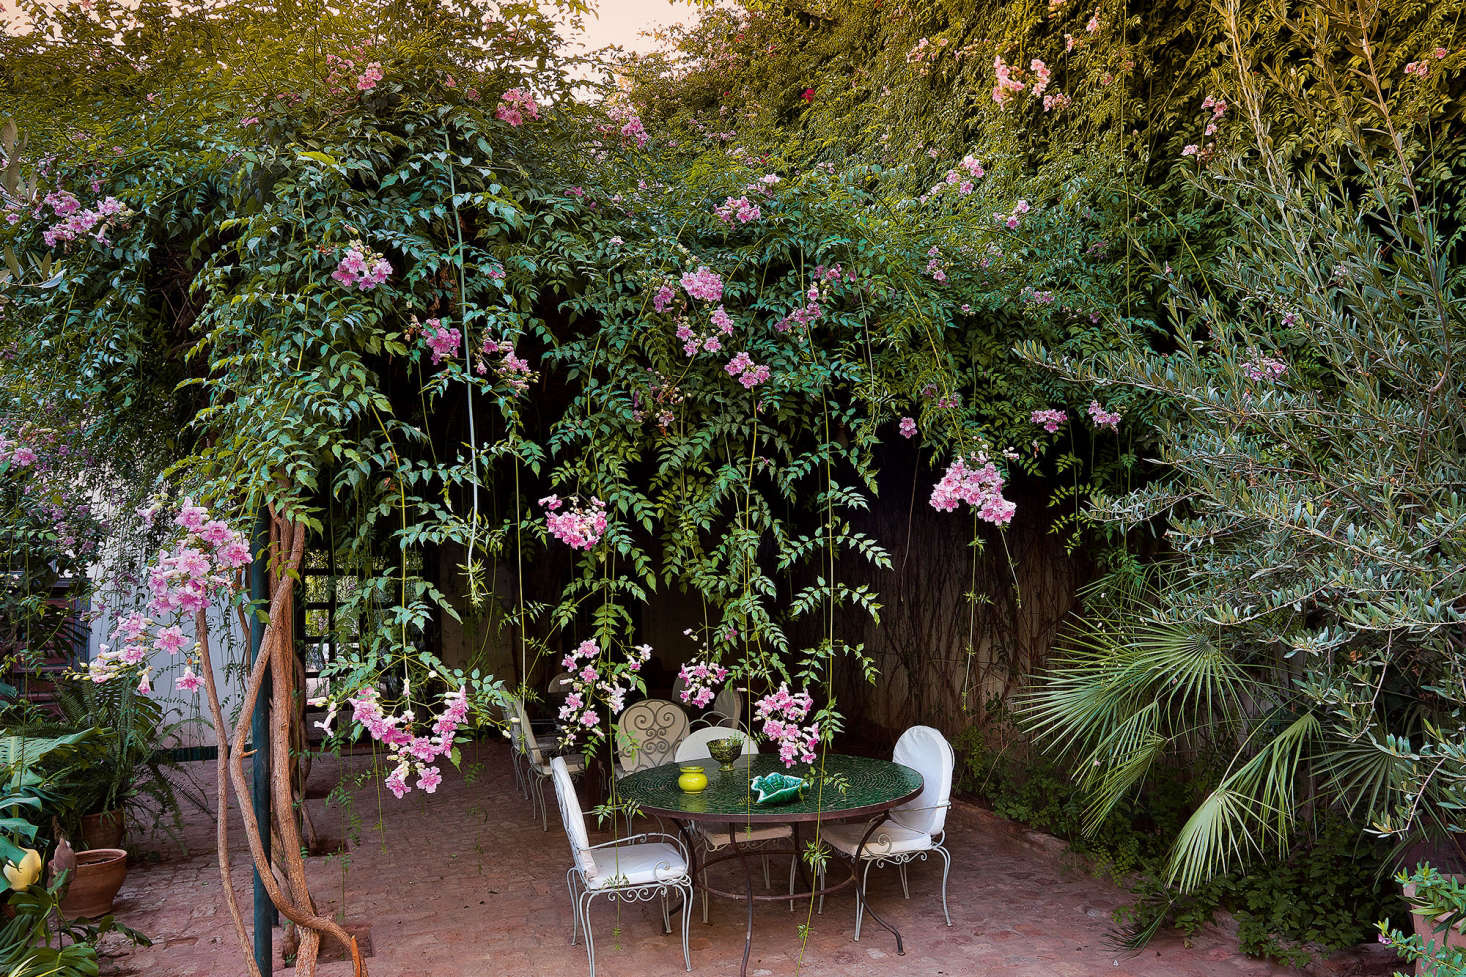 A floral fringe of Pink Trumpet Vine (Podranea ricasoliana) provides lunchtime shade at Riad Madani.